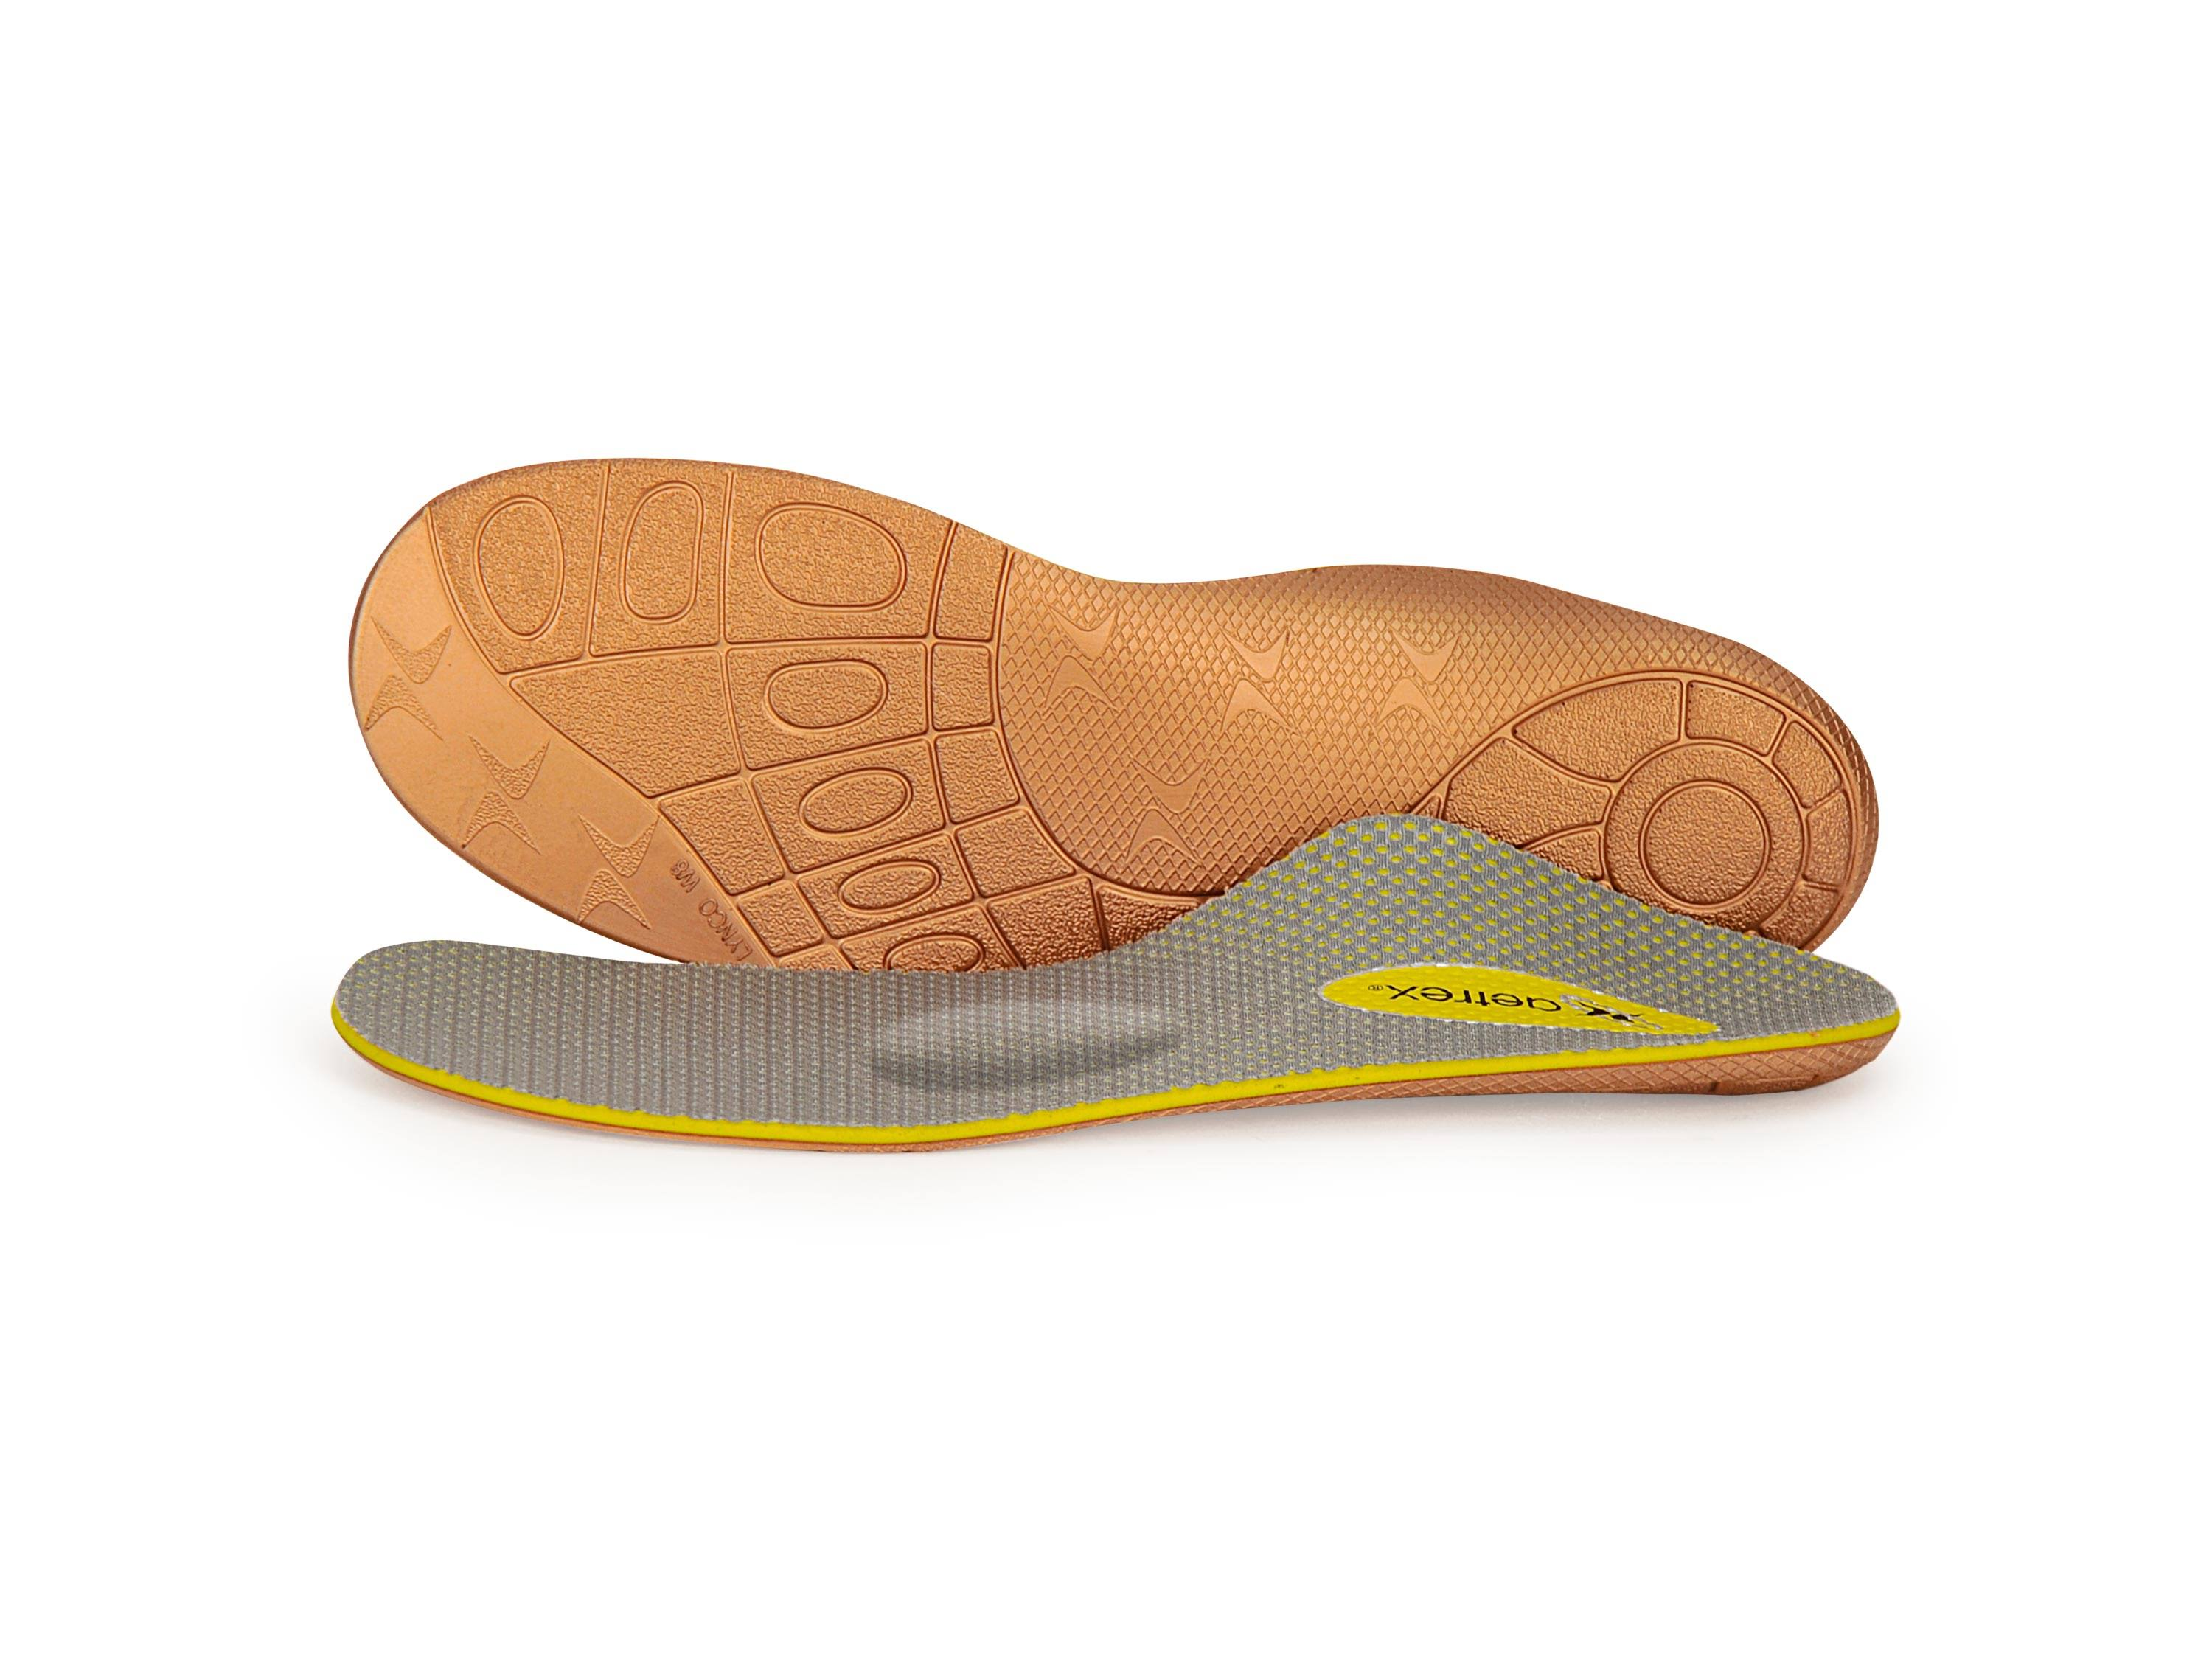 Aetrex Women's L805 Orthotic - 9